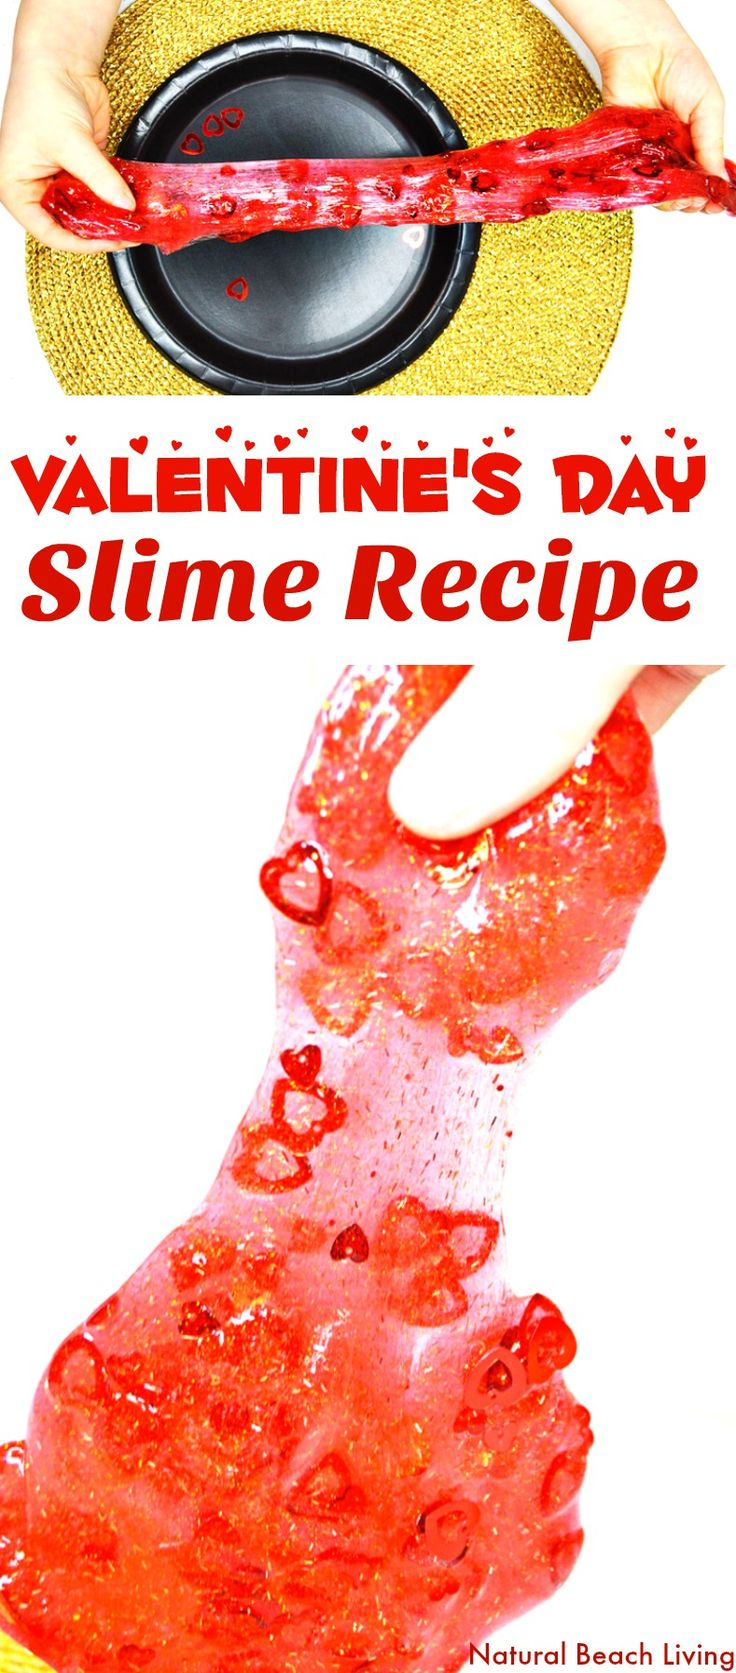 The Best Valentine's Day Slime Recipe, Easy Slime with Contact Solution, Fun Glitter Slime perfect for Valentine's Day, Slime Recipe with glue, Slime recipe without Borax, Best Slime Recipe, Homemade Slime, Holiday Slime, Slime Recipes, Sensory Play, Slime Videos, Valentine's Day Activities, Non Candy Valentine's, #Valentinesday #Slime #slimerecipe #slimerecipes #sensoryplay